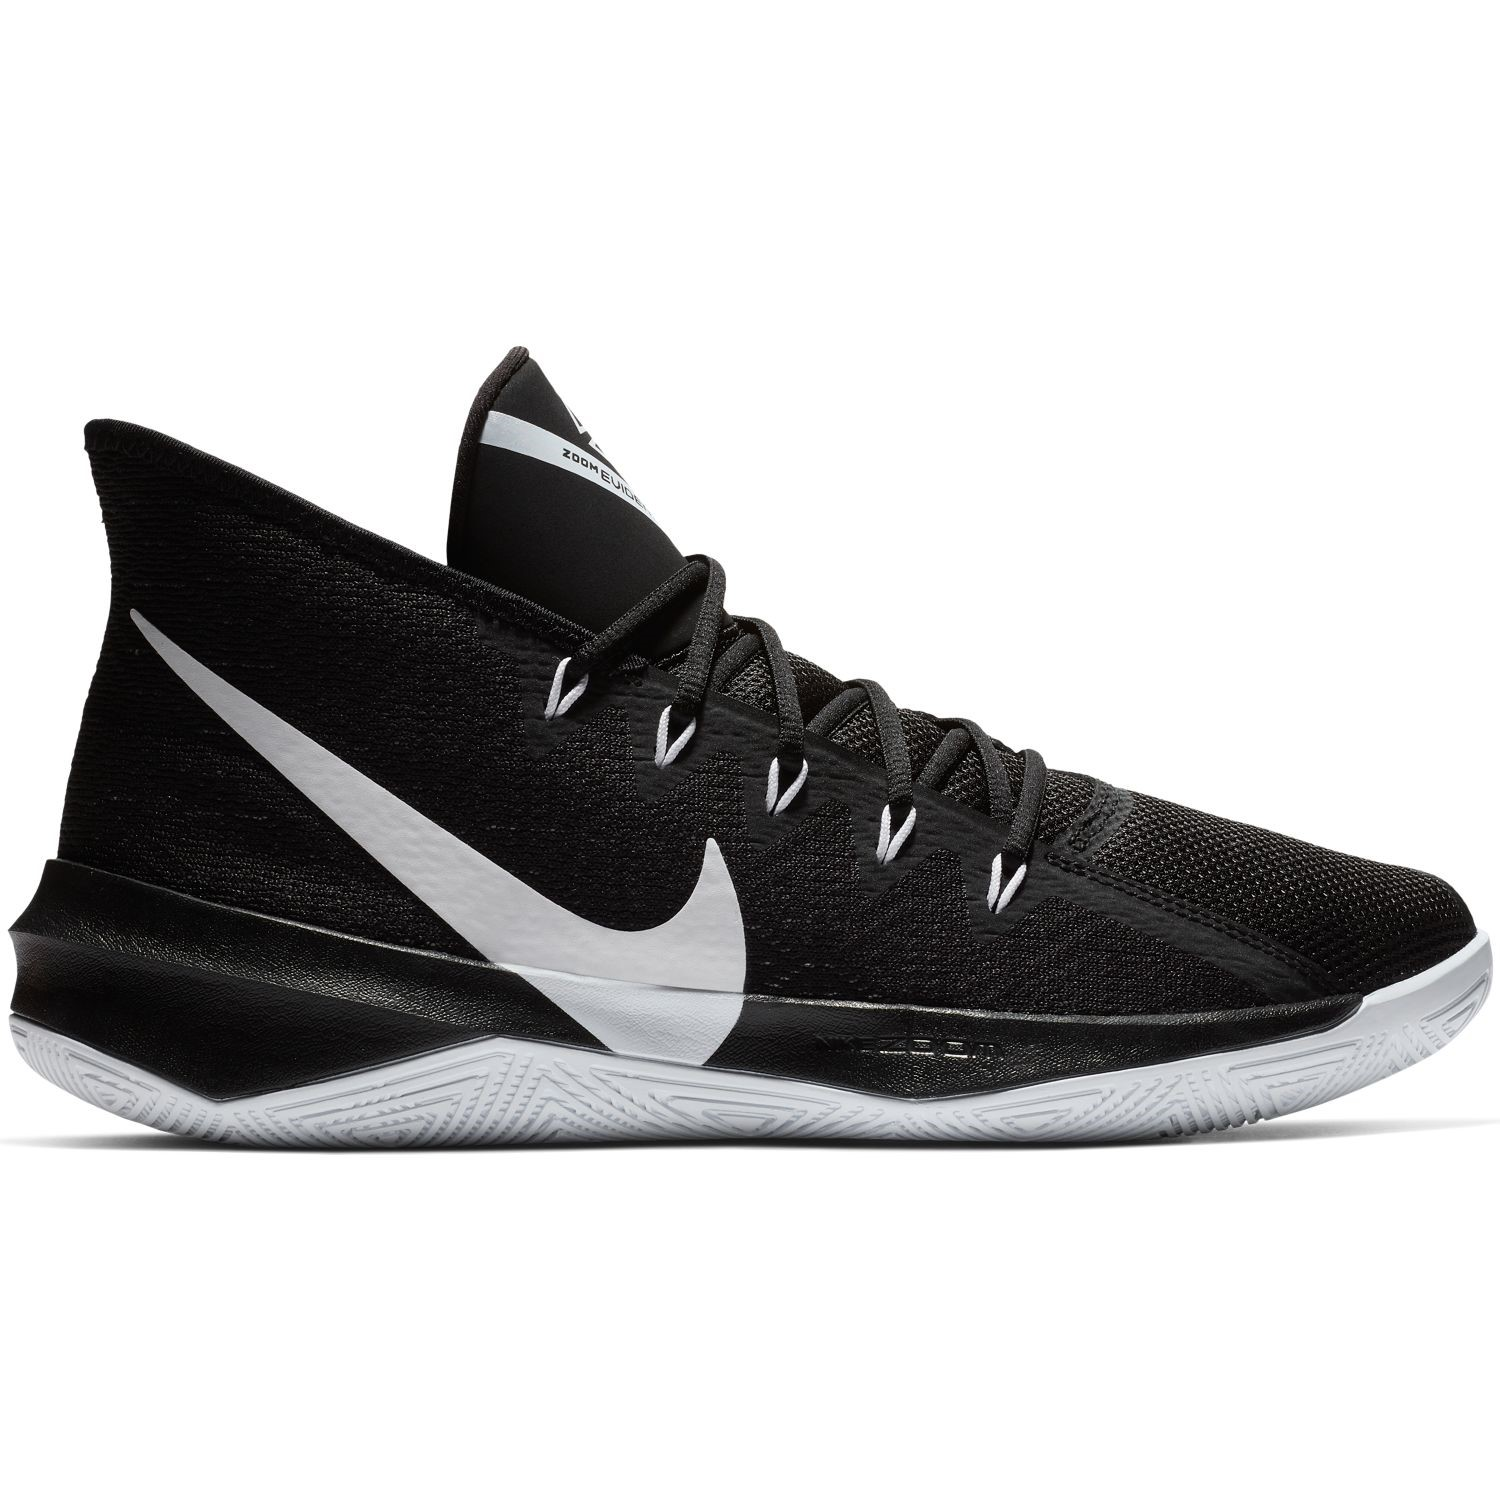 Nike Zoom Evidence III Mens Basketball Shoes